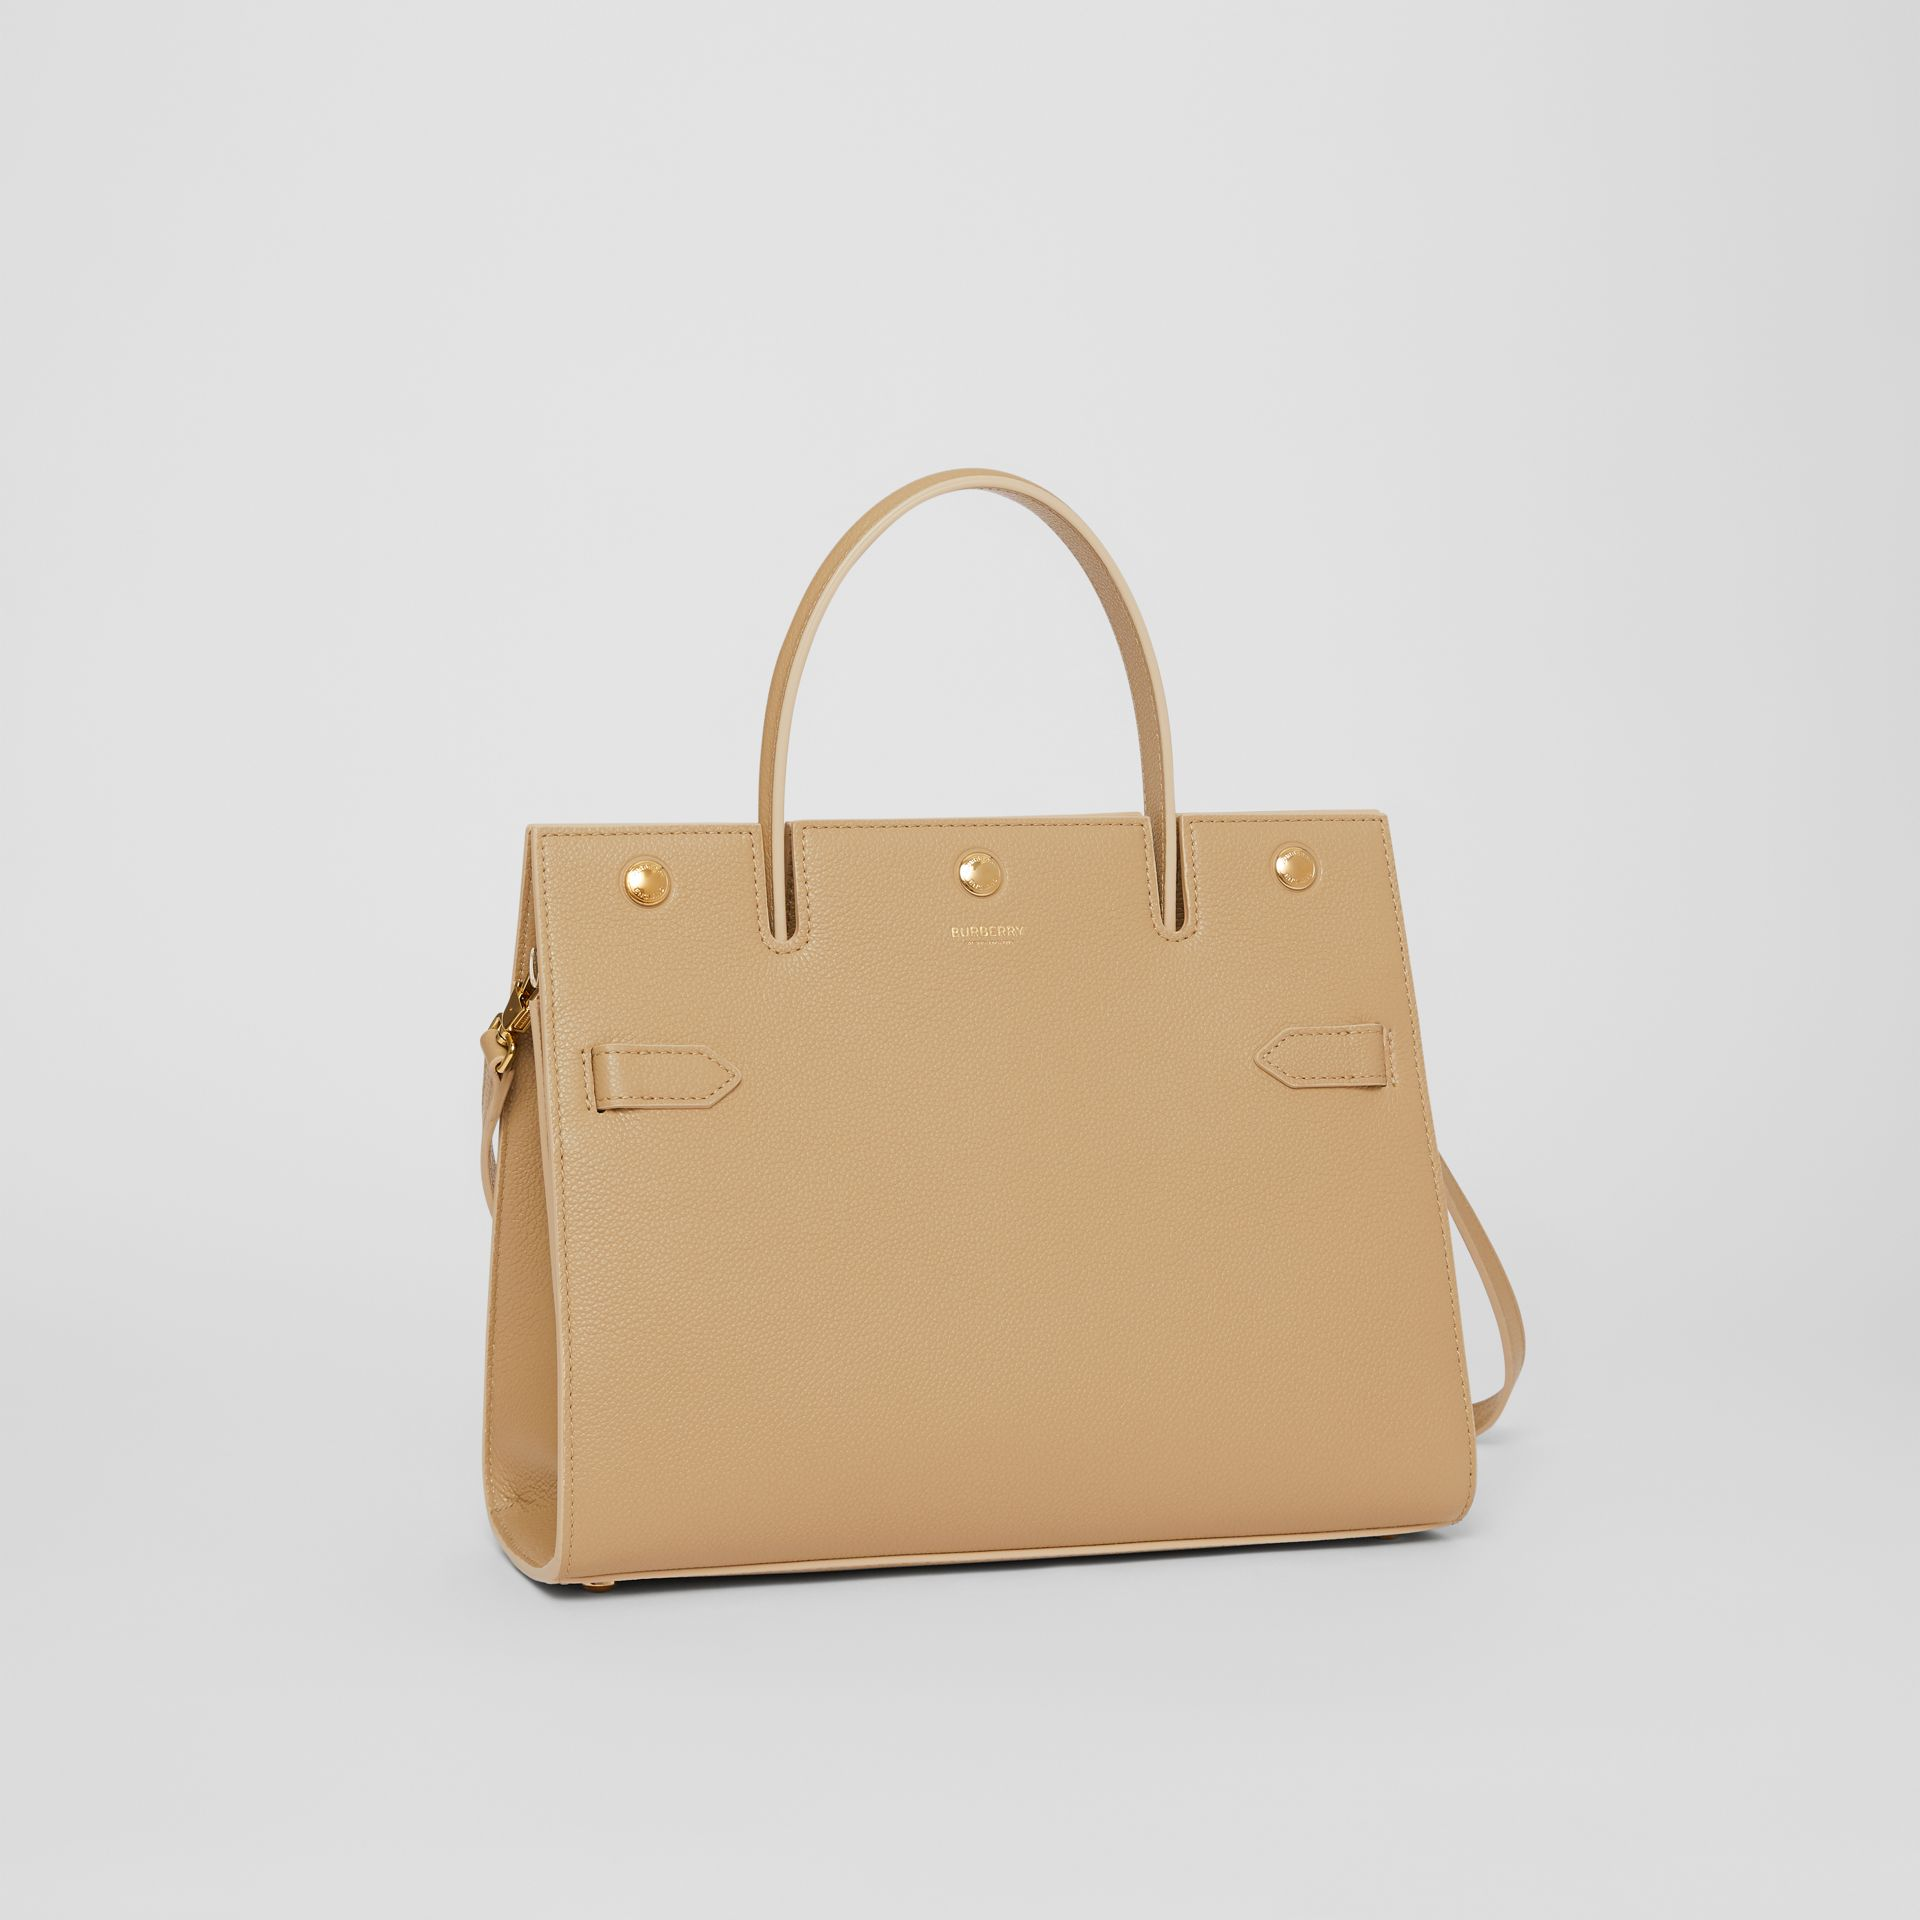 Small Leather Title Bag in Honey - Women | Burberry Australia - gallery image 6